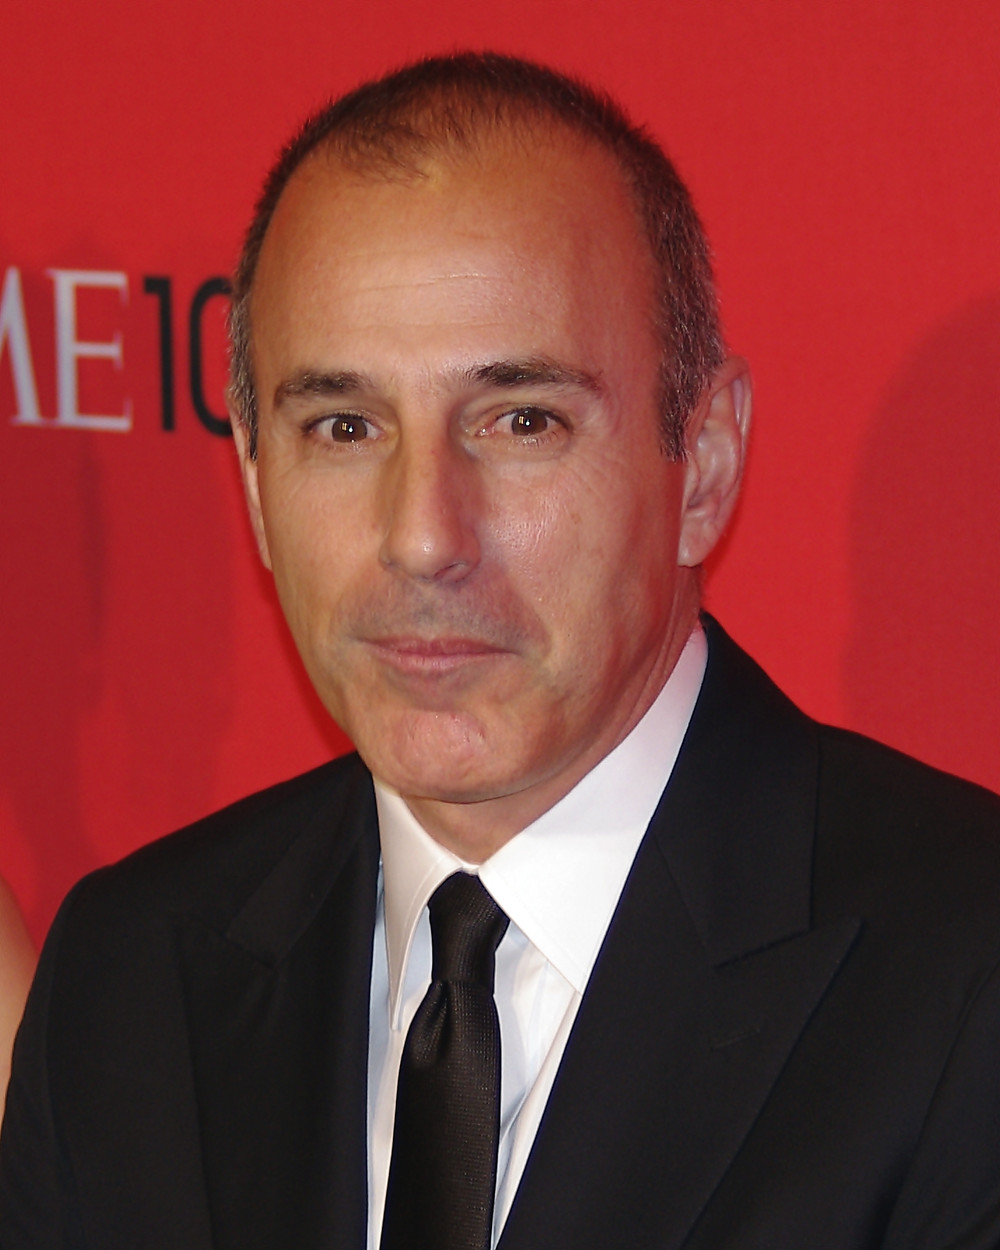 Matt Lauer NBC Today Show host pictured in 2012